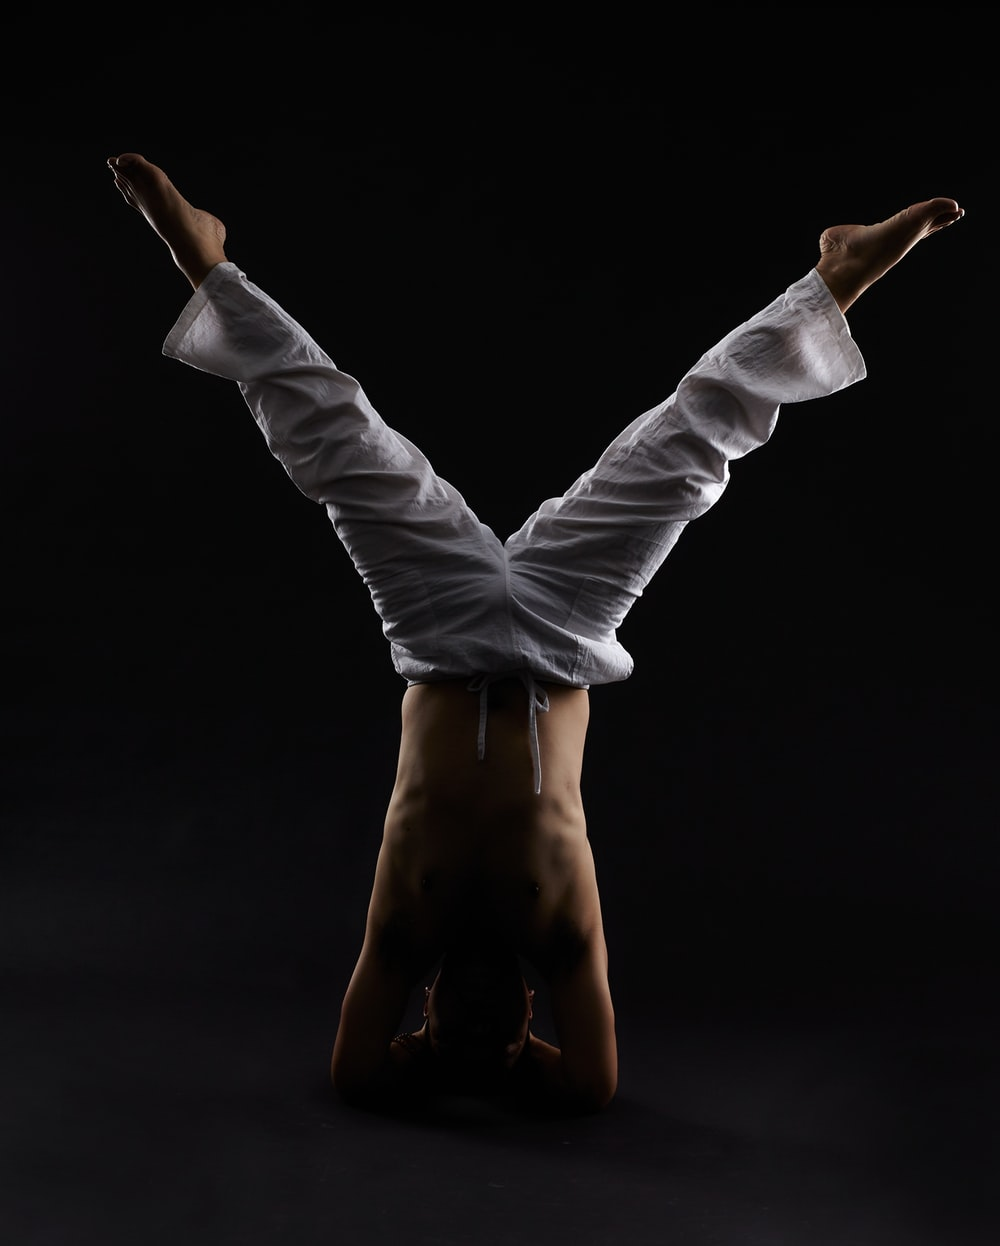 man doing head stand